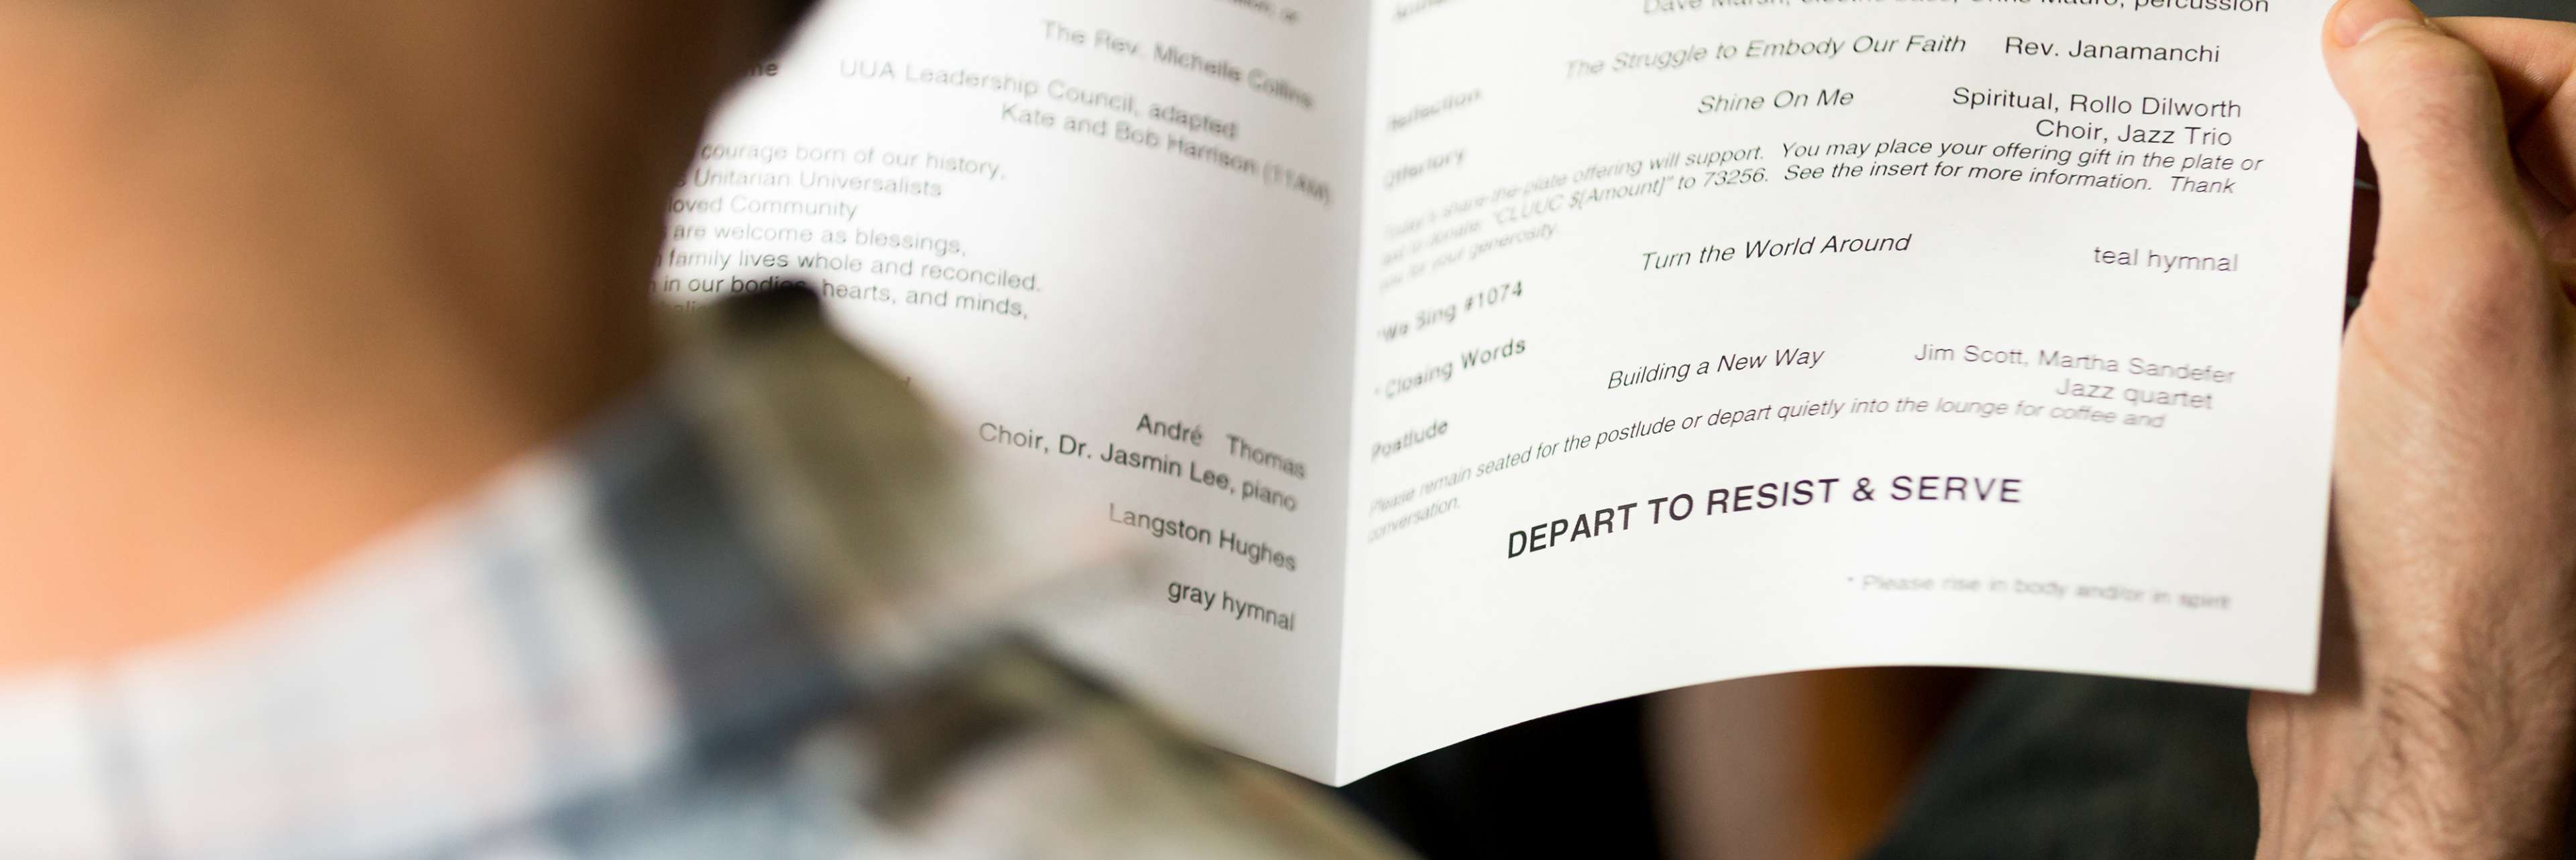 """View of weekly bulletin that says """"Depart to Resist and Serve"""""""